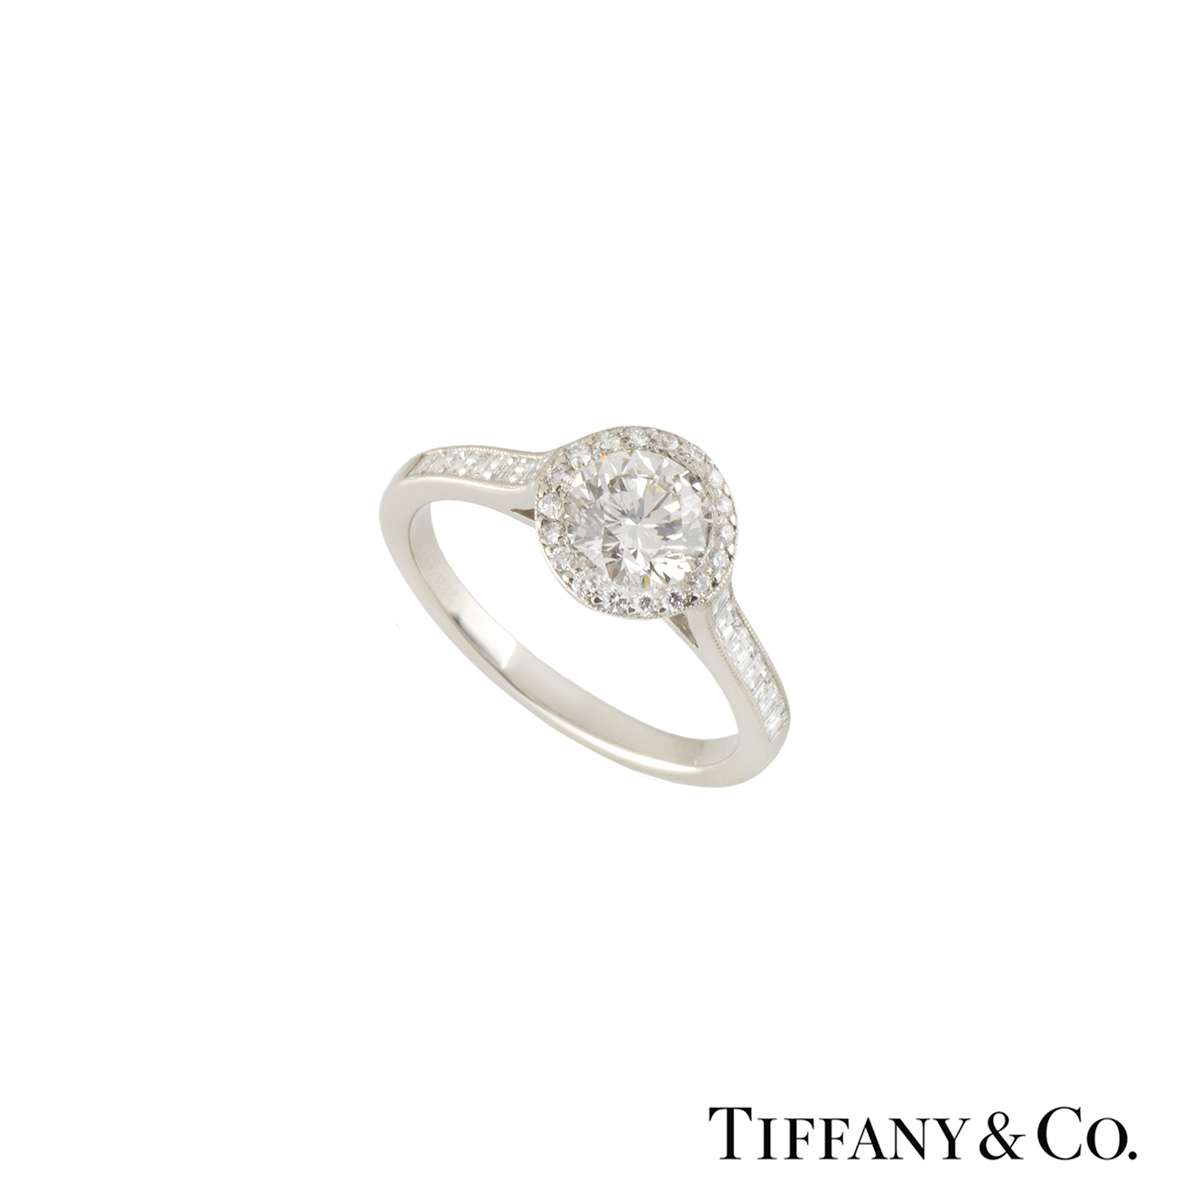 Tiffany & Co. Platinum Diamond Halo Ring 1.00ct G/VVS1